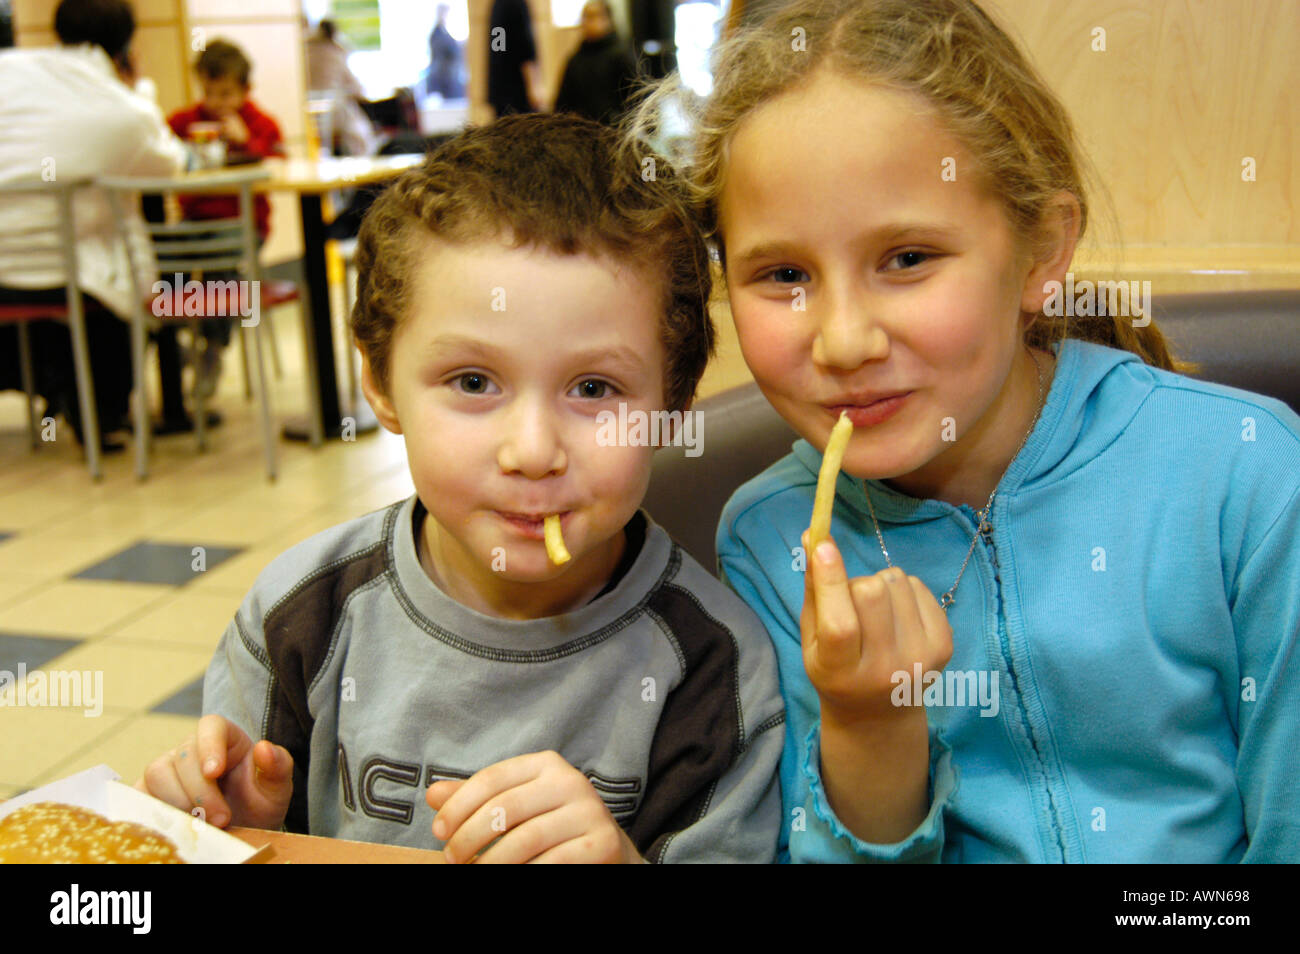 Brother and sister eating Mcdonald's French fries, England, UK - Stock Image